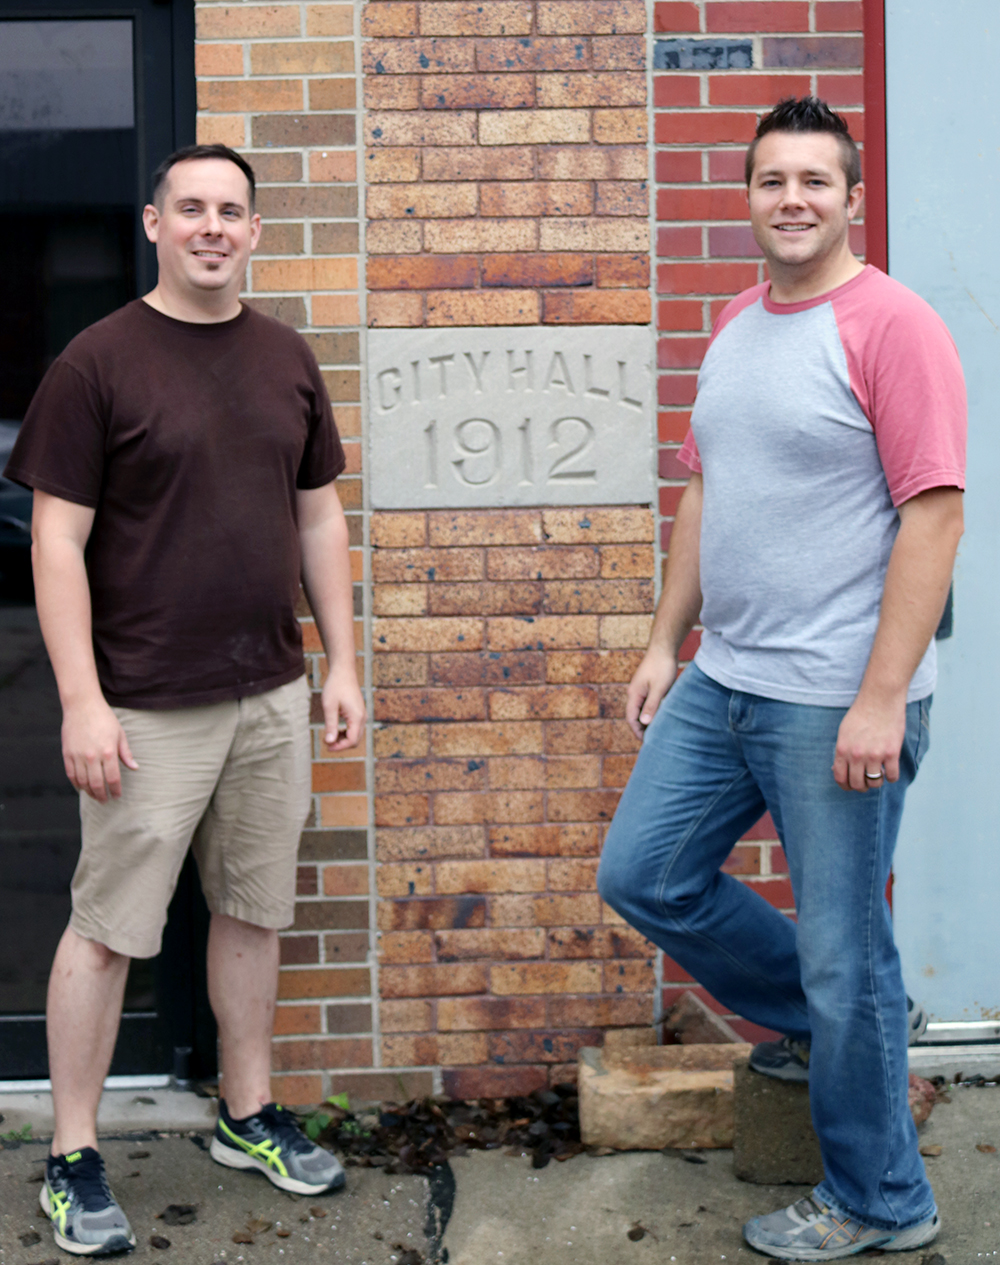 Owners Mark Kanitz and Lukas Rix stand in front of the old 1912 Building. A part of the building is being leased out to Bryce Allen to start up a brewery for craft beer.